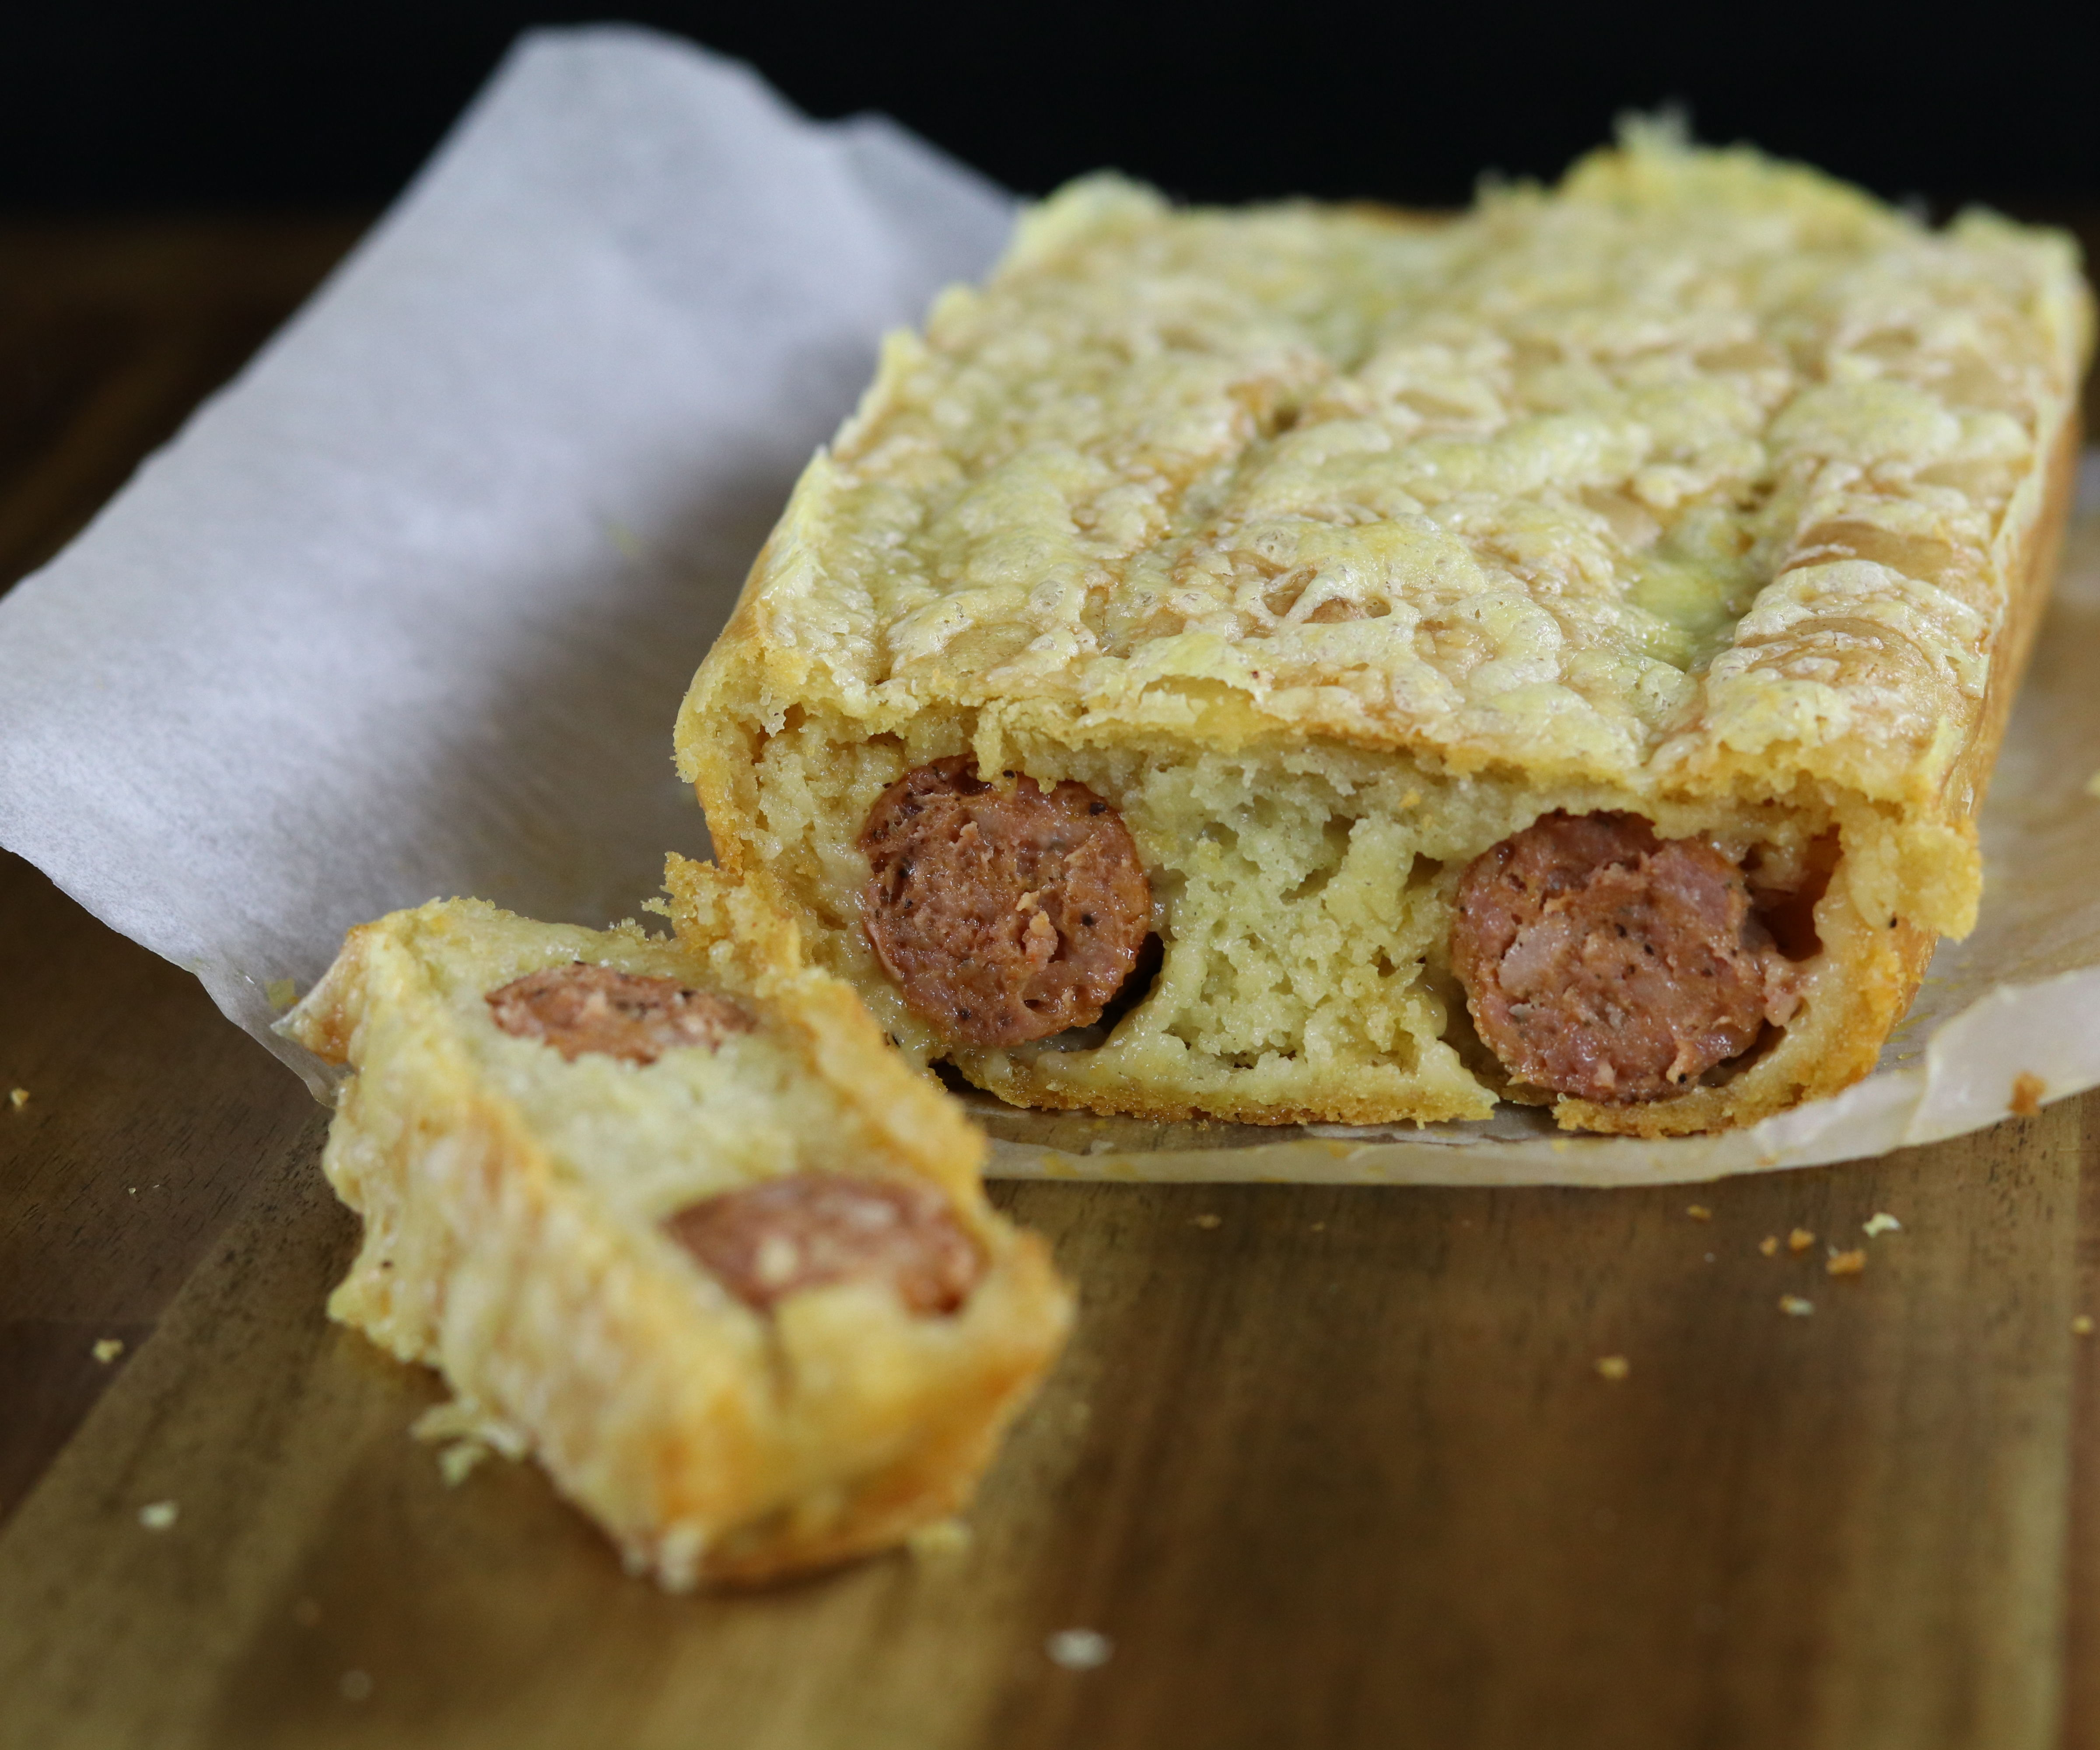 Double Dog (sausage stuffed bread)